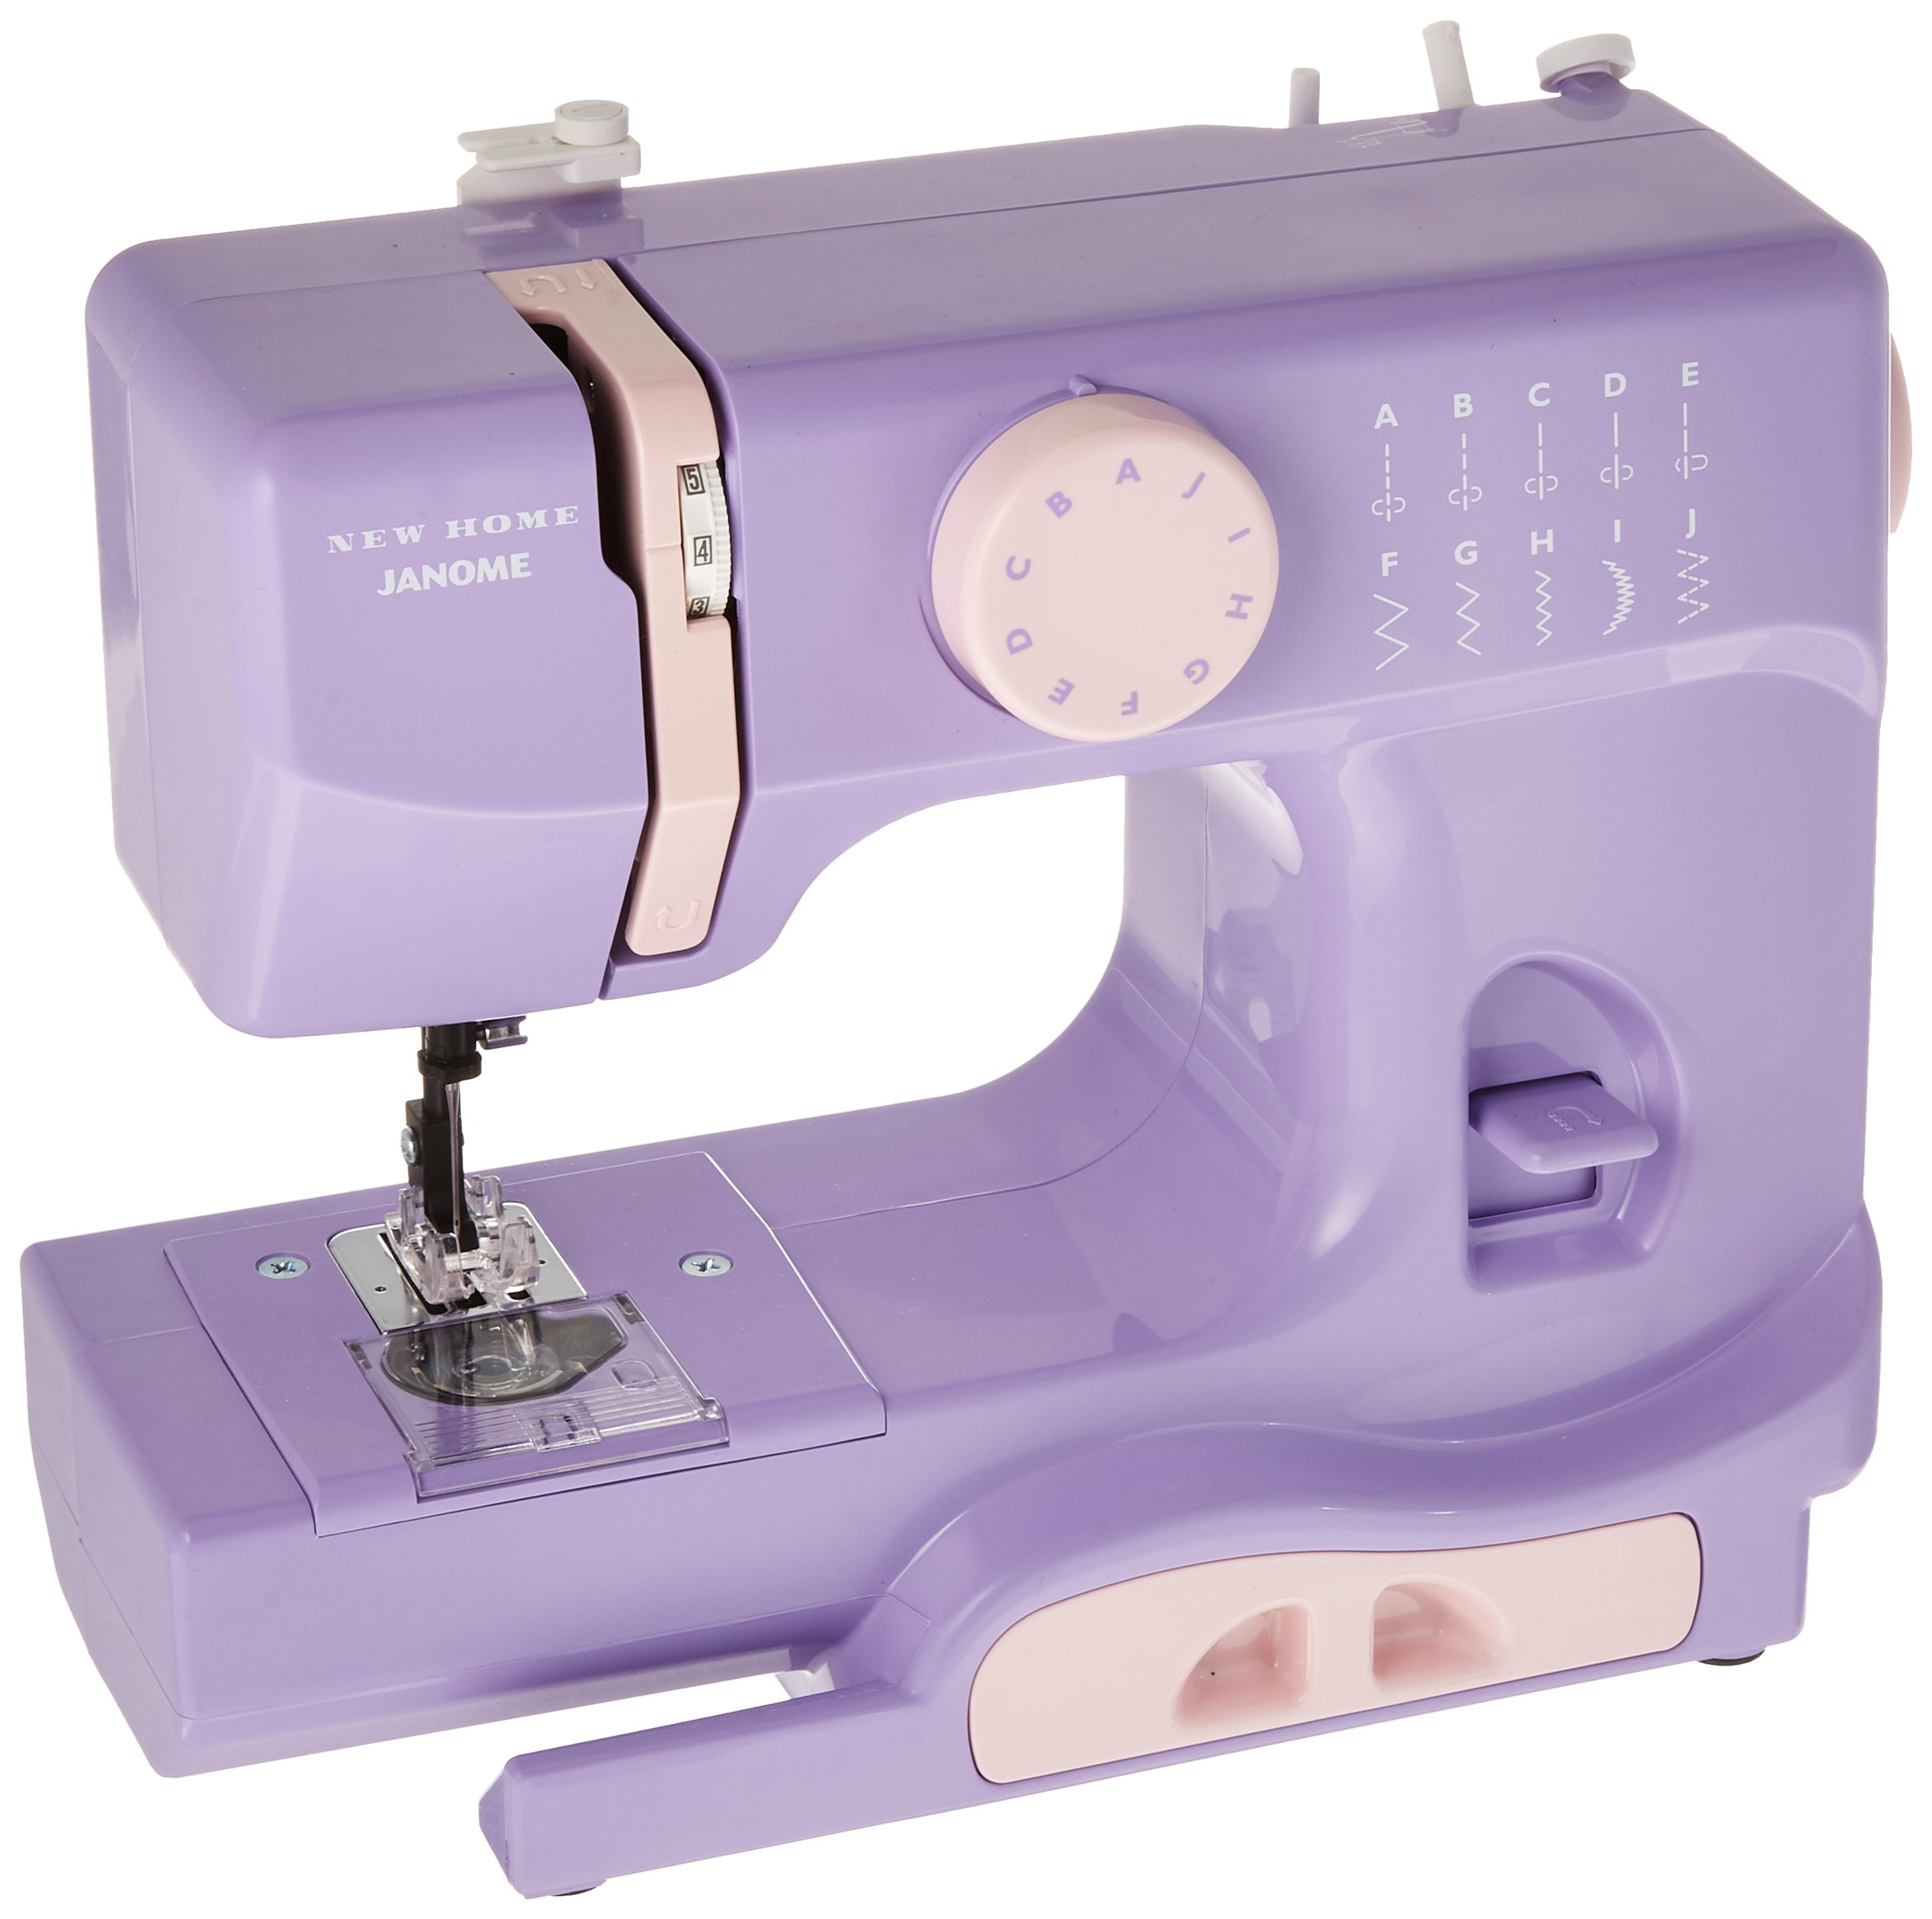 Compact Sewing Machine with Free Arm only 5 pounds Janome Lady Lilac Basic 10-Stitch Portable Easy-to-Use